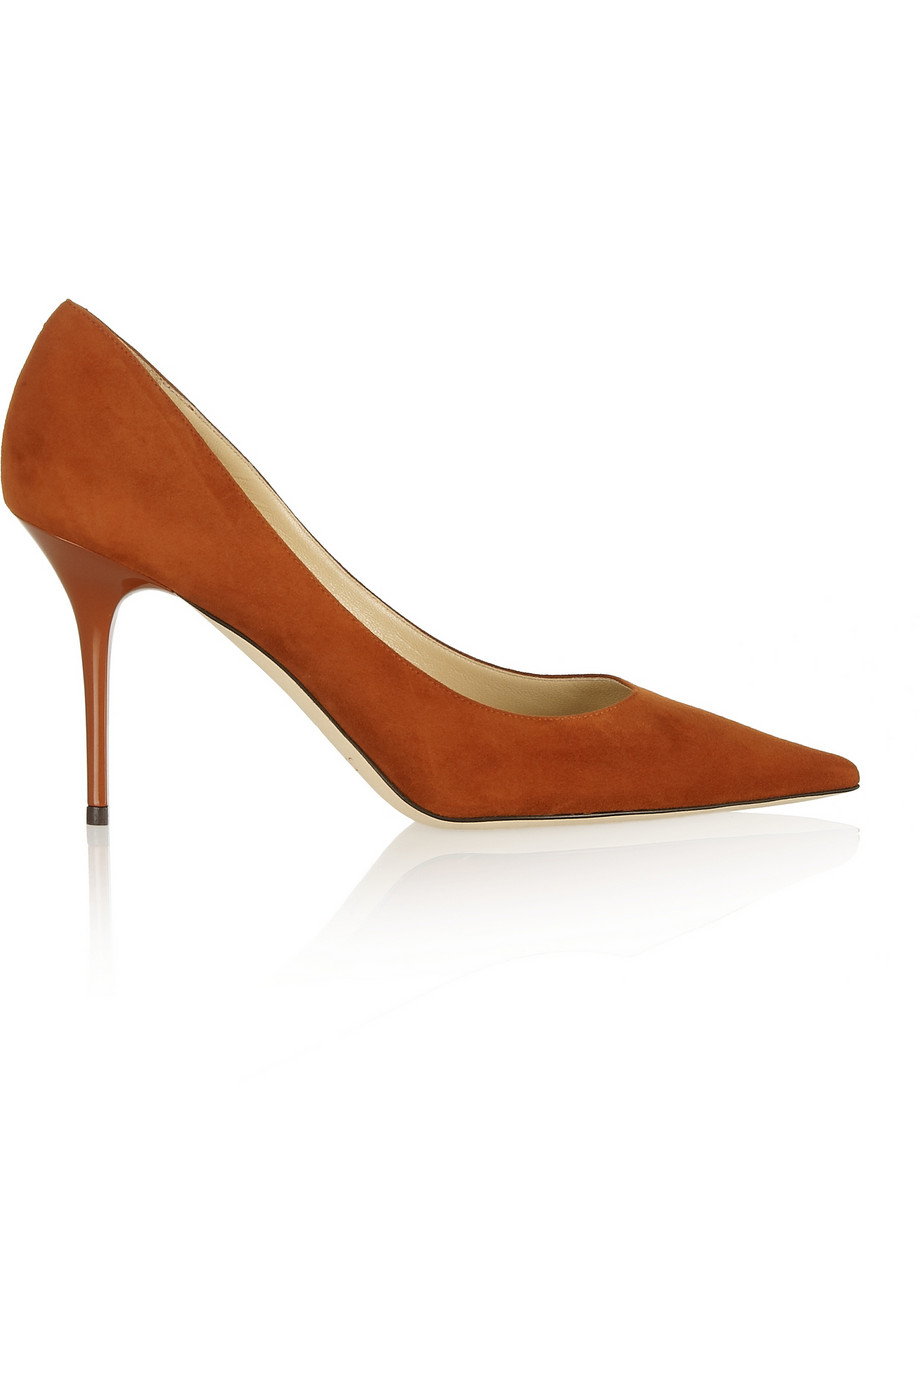 suede jimmy choo pumps how to clean